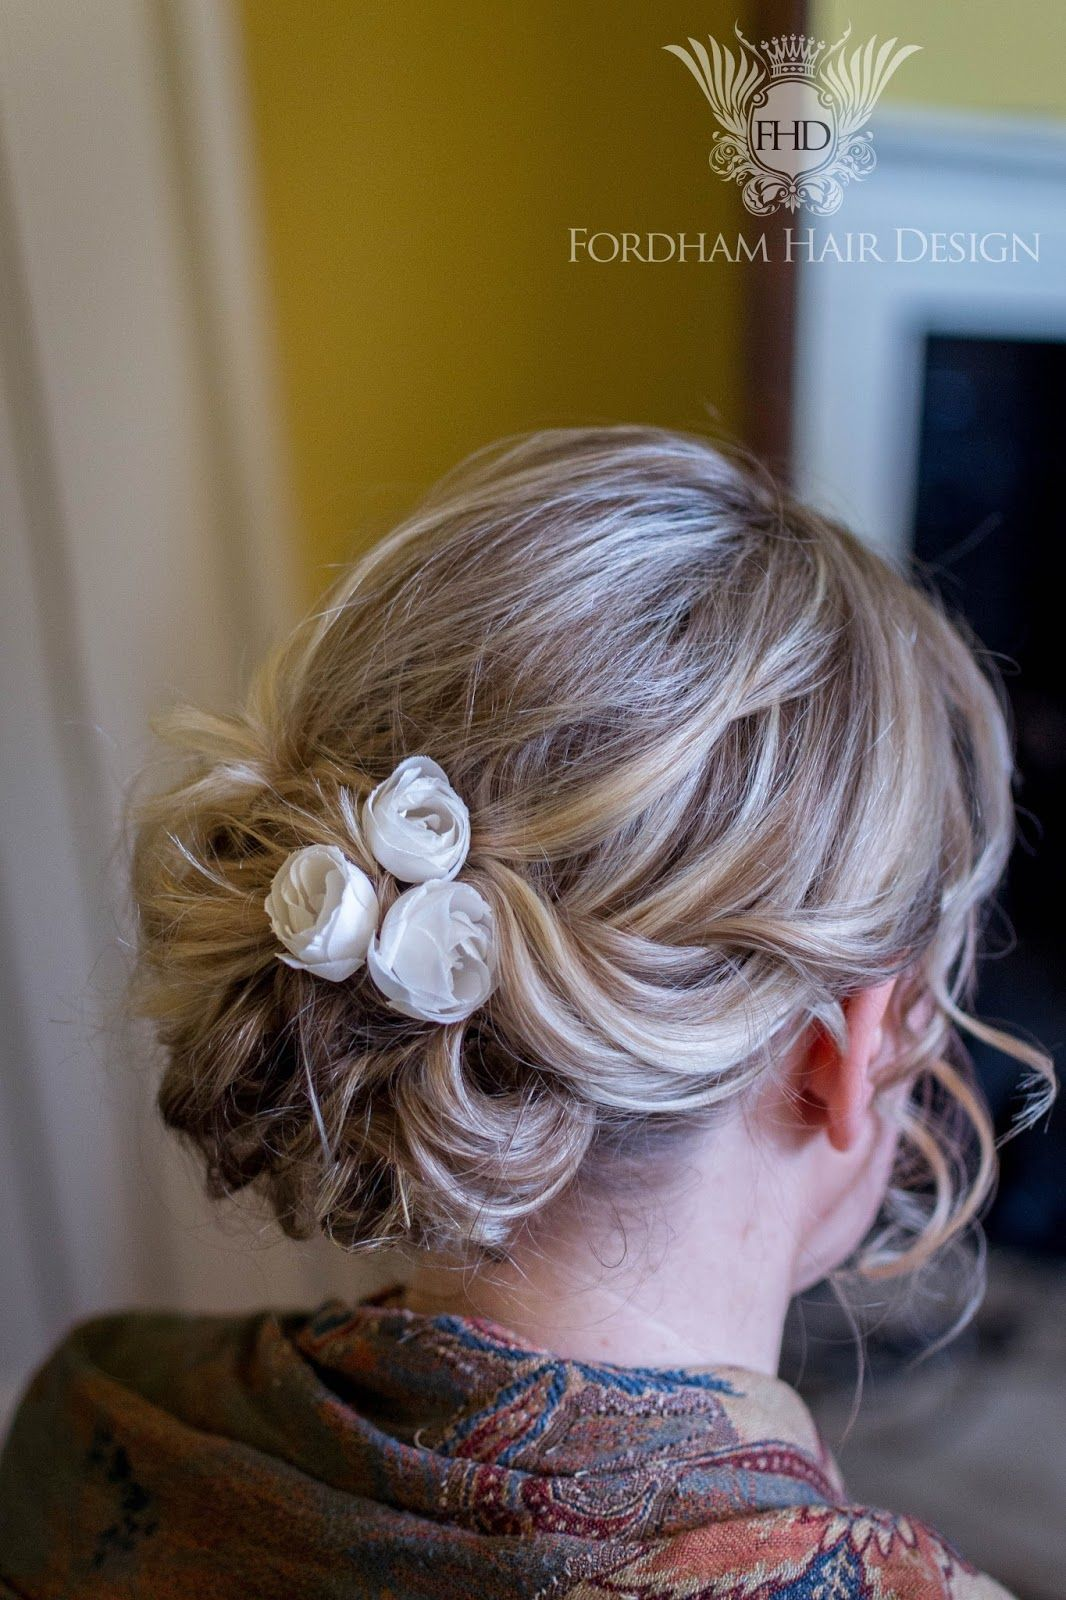 Wedding hair accessories gloucestershire - Boho Bridal Hair Style At Elmore Court Wedding Gloucestershire Fordham Hair Design